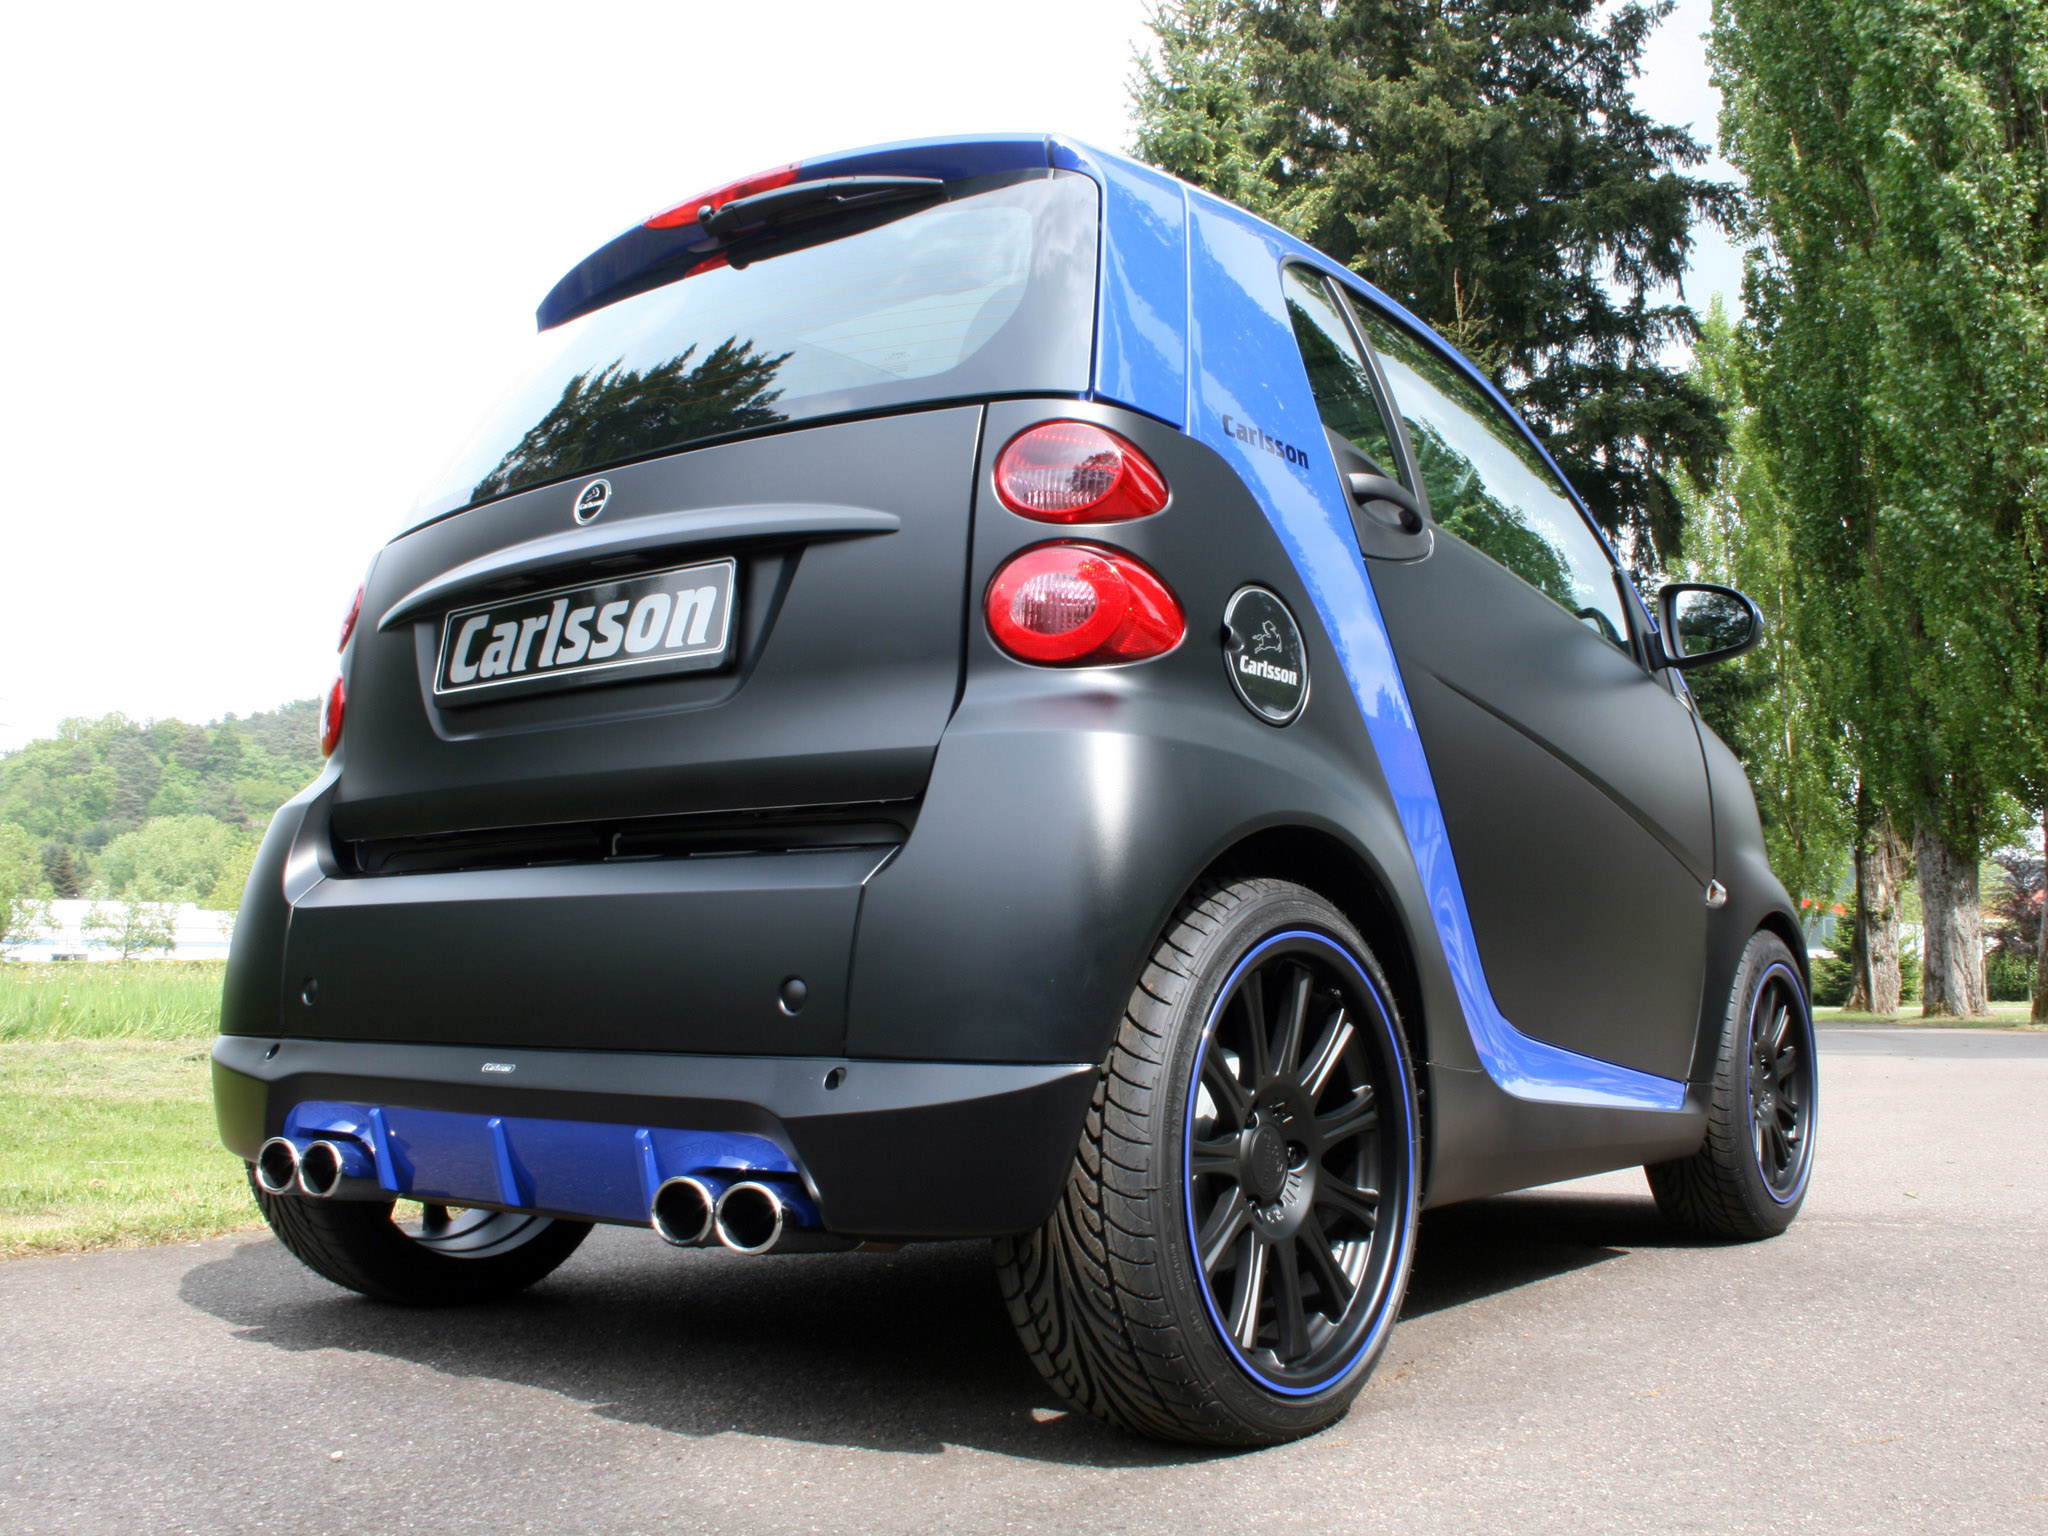 carlsson smart fortwo 2007 carlsson smart fortwo 2007 photo 12 car in pictures car photo gallery. Black Bedroom Furniture Sets. Home Design Ideas